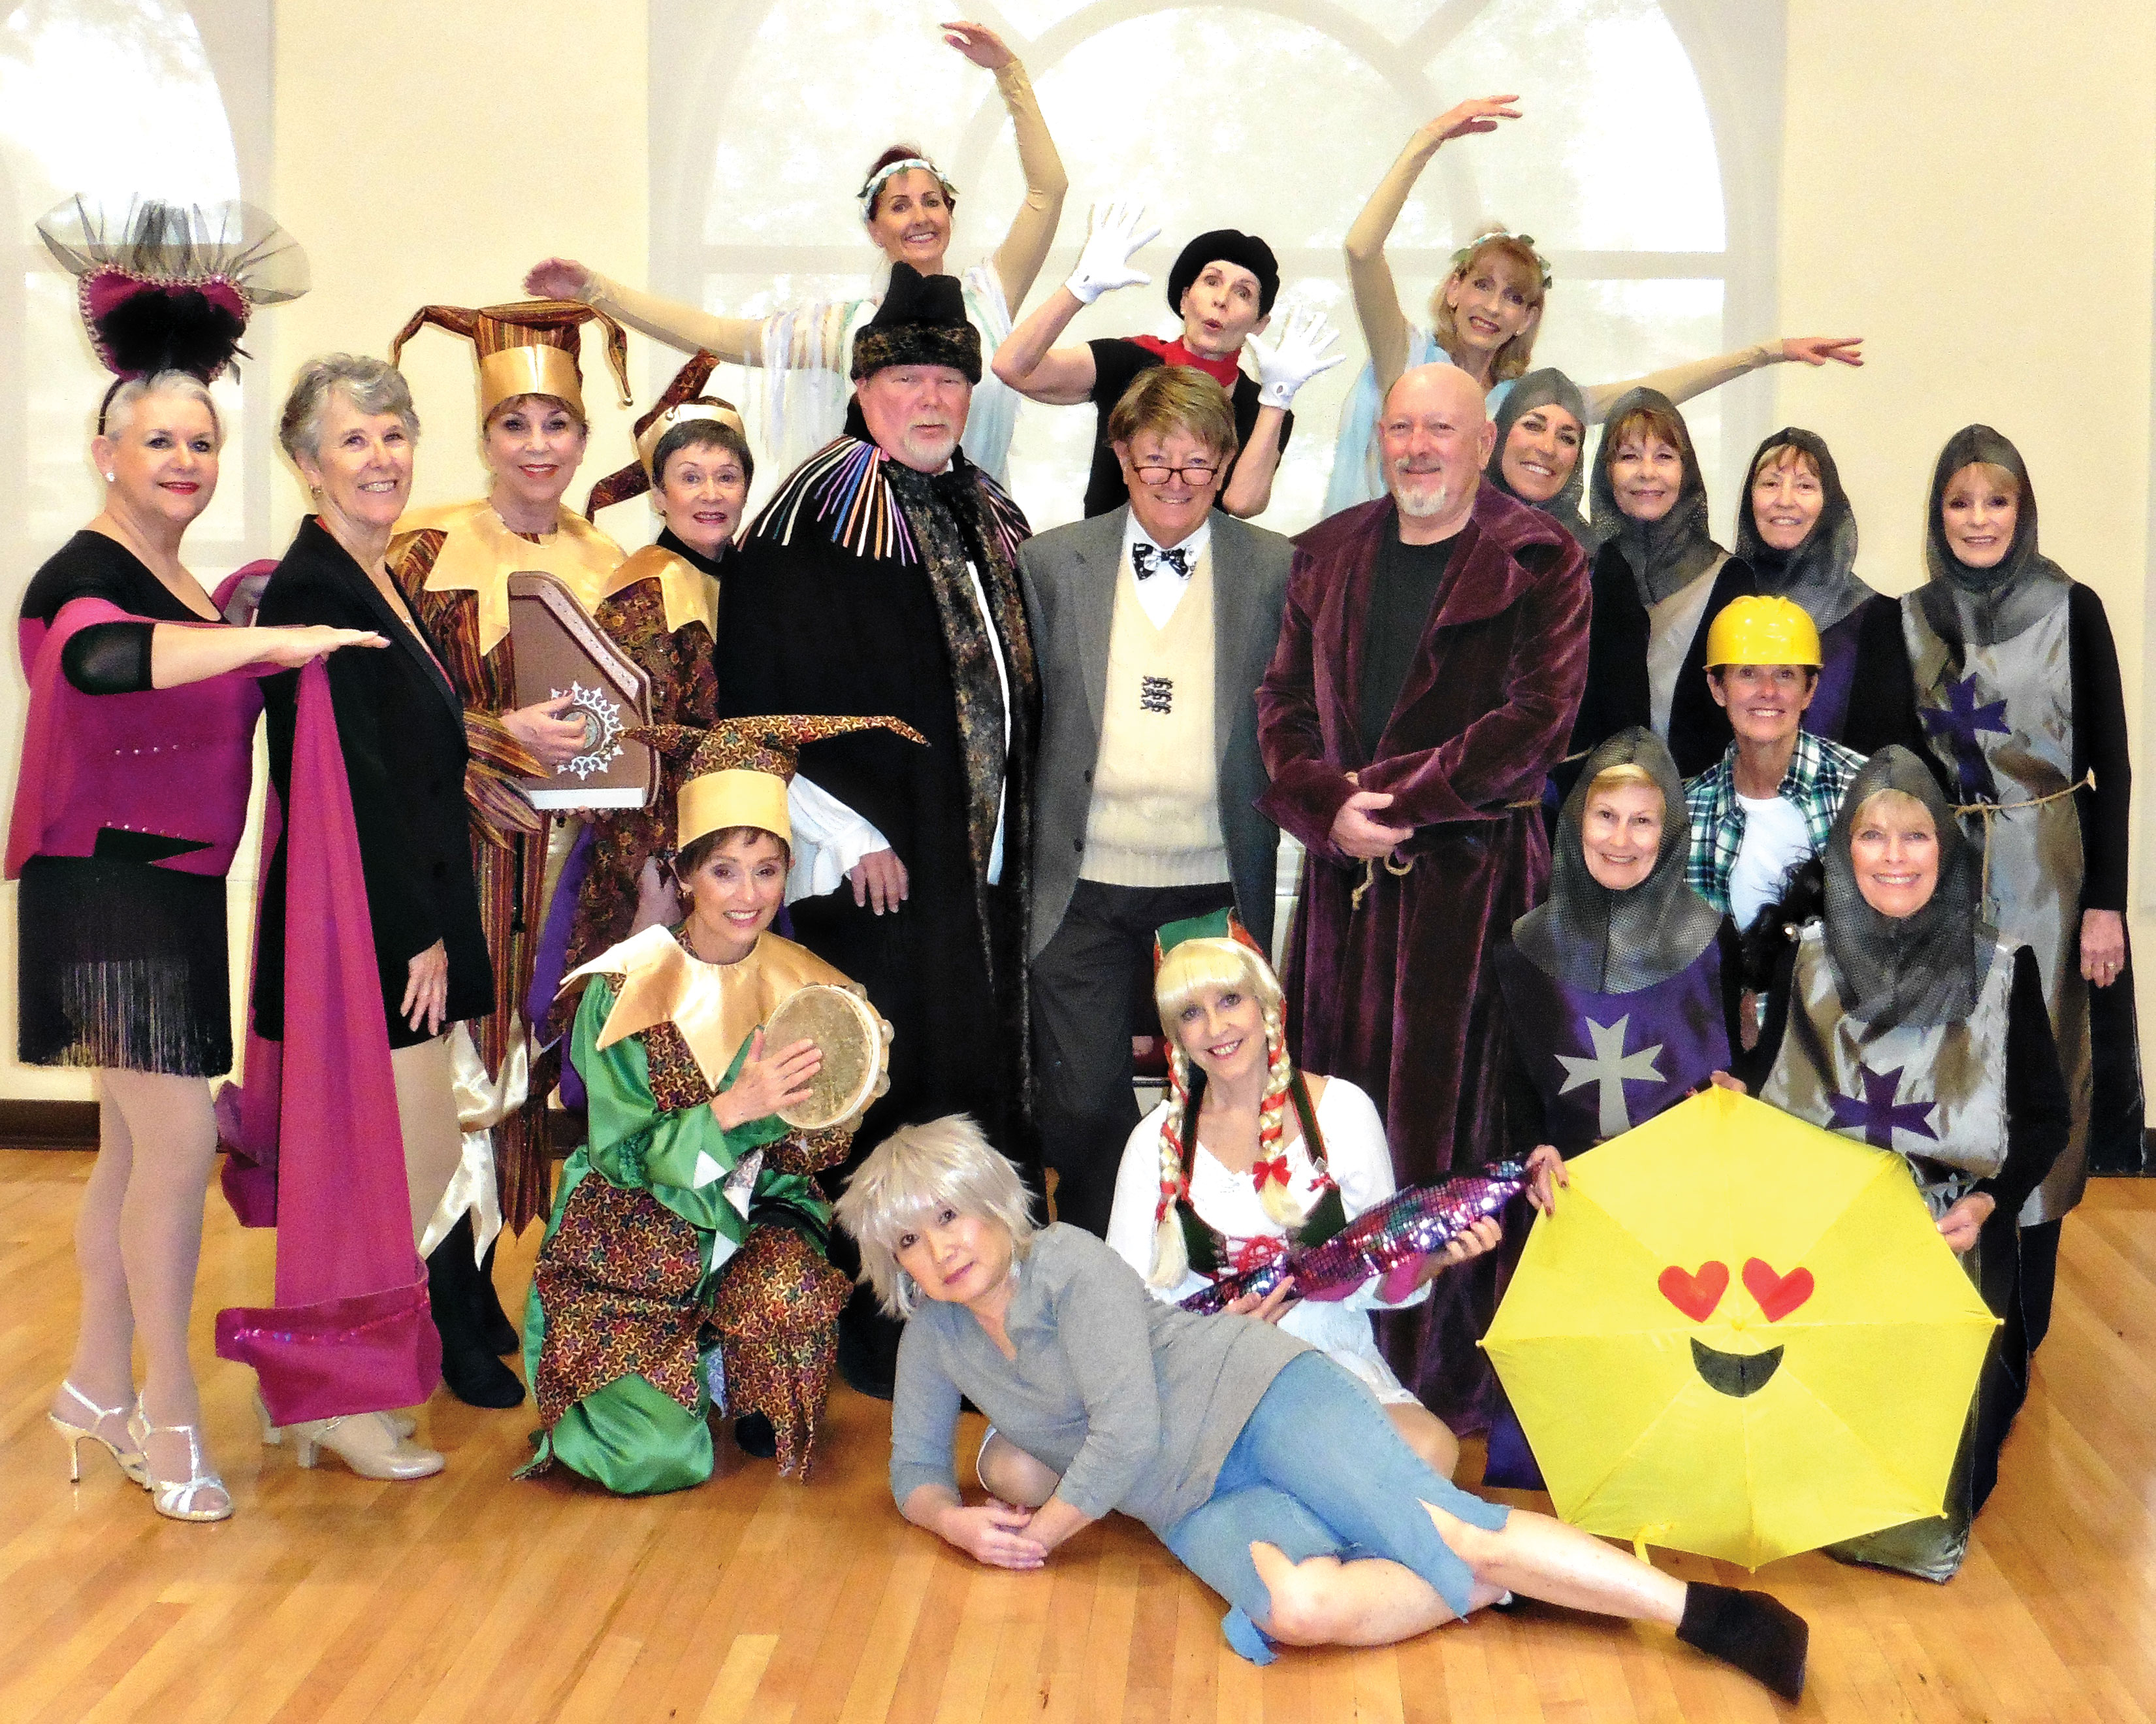 Some of the Spamalot crazy characters